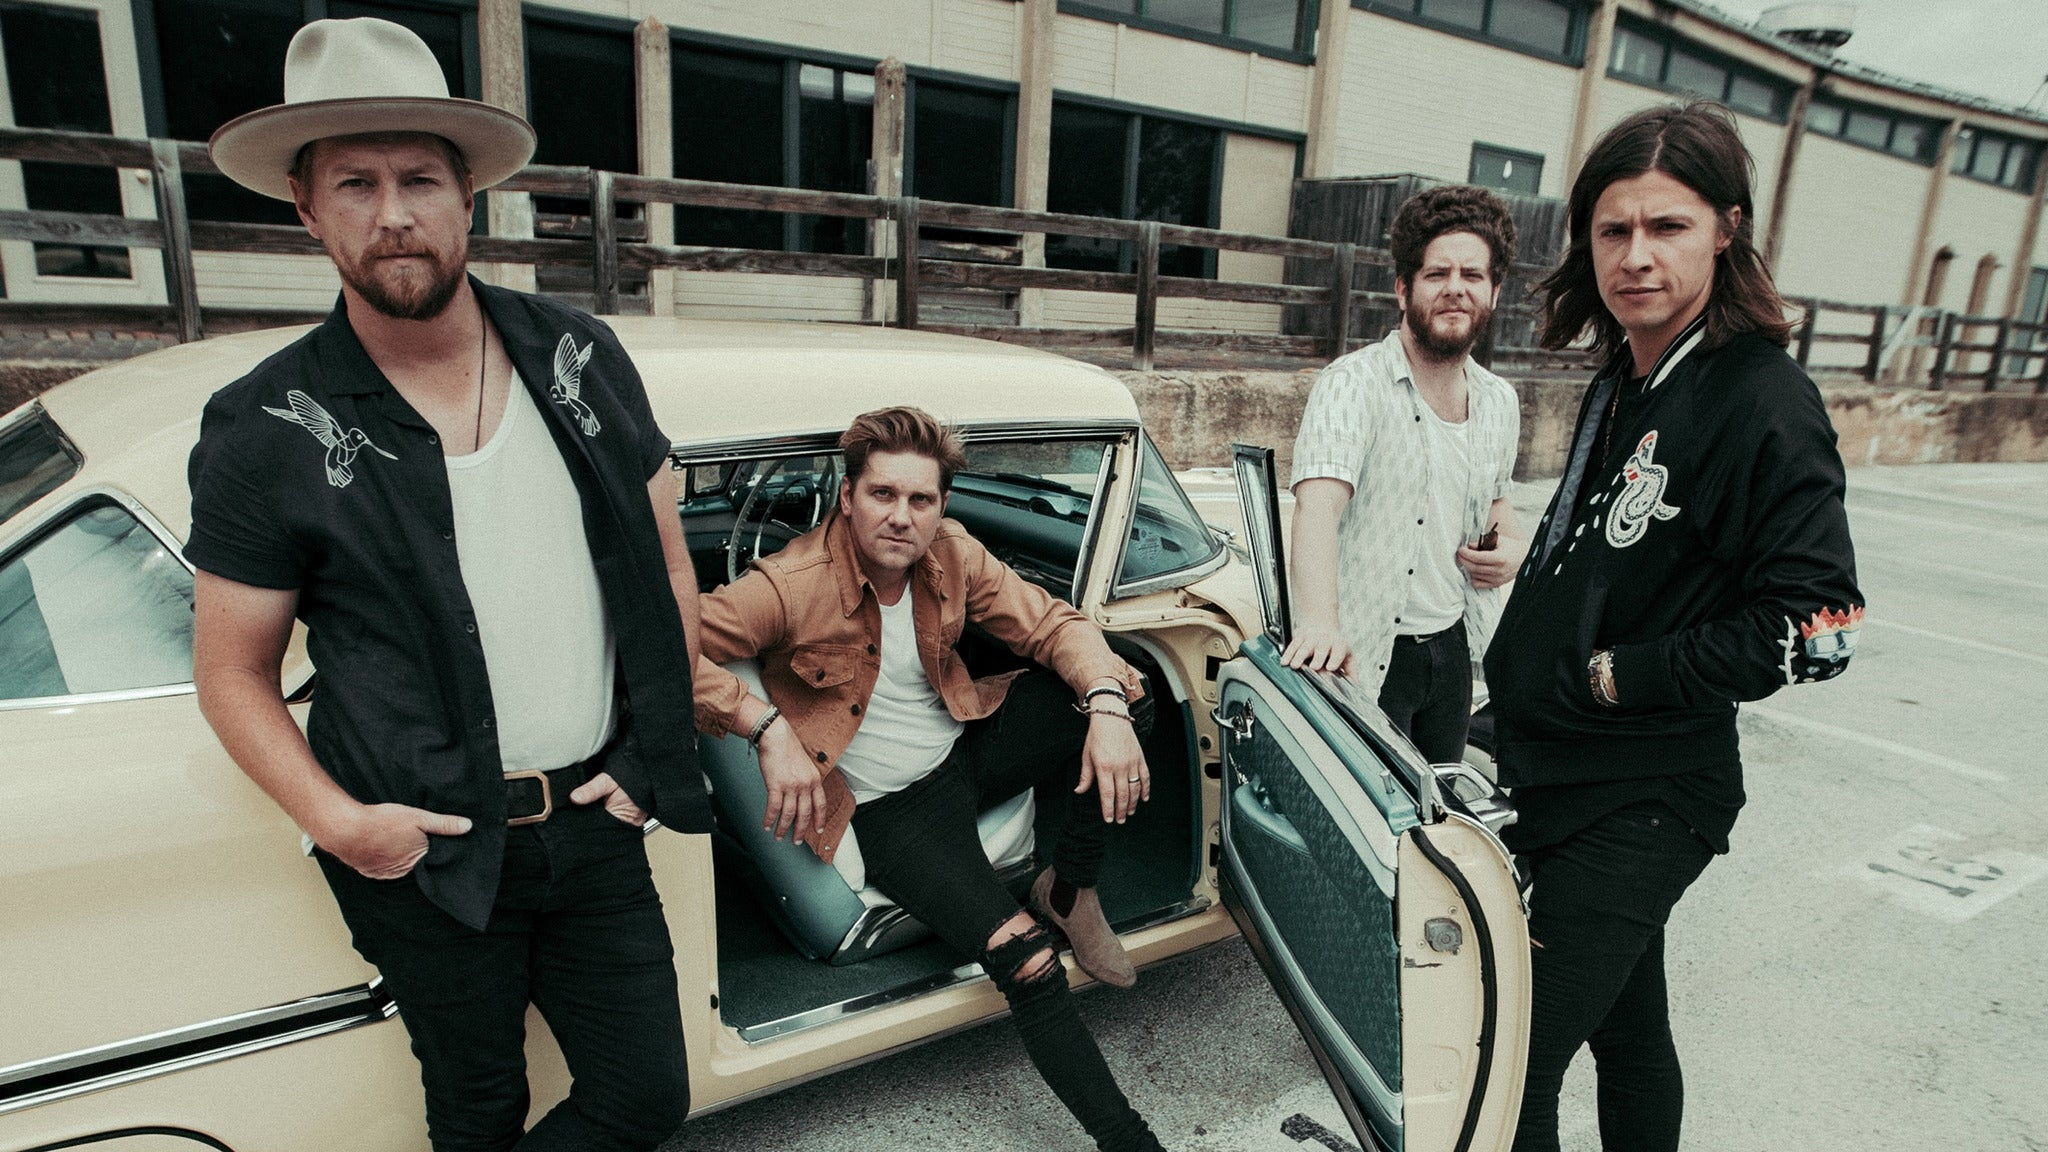 NEEDTOBREATHE - Upgrade Meet & Greet Packages